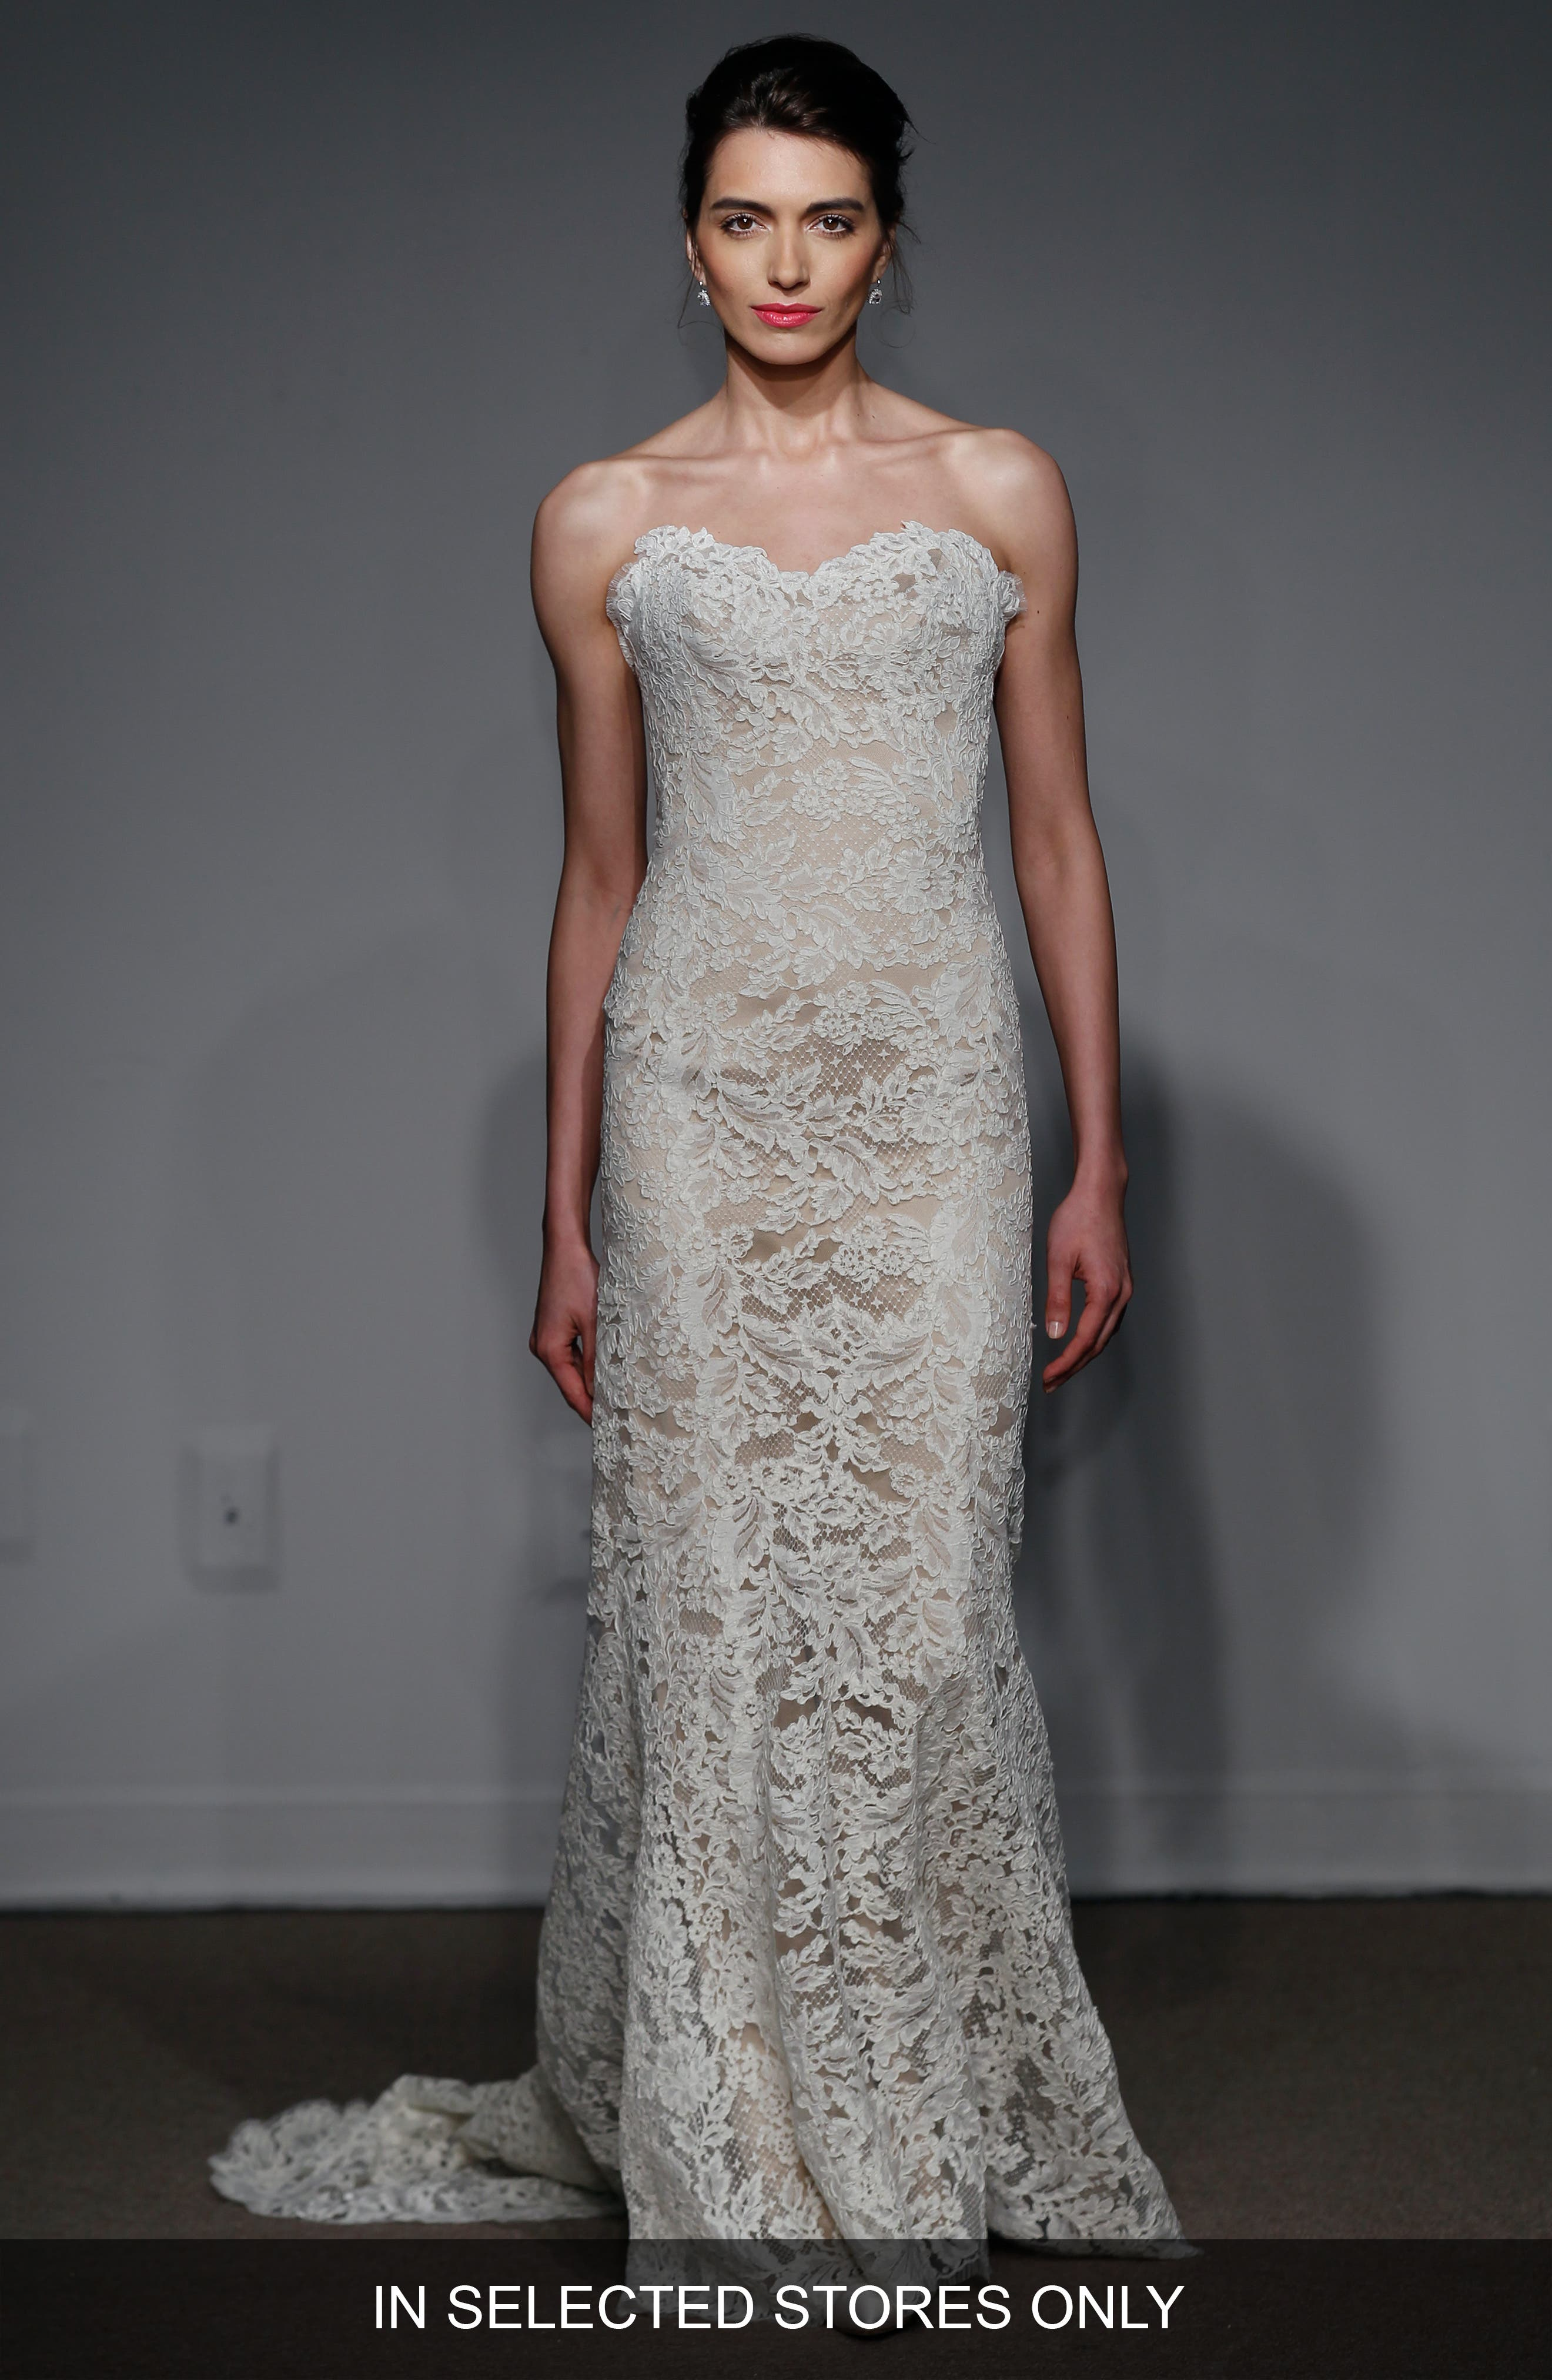 Main Image - Anna Maier Couture Lyon Strapless Lace Column Gown (Regular & Plus Size)